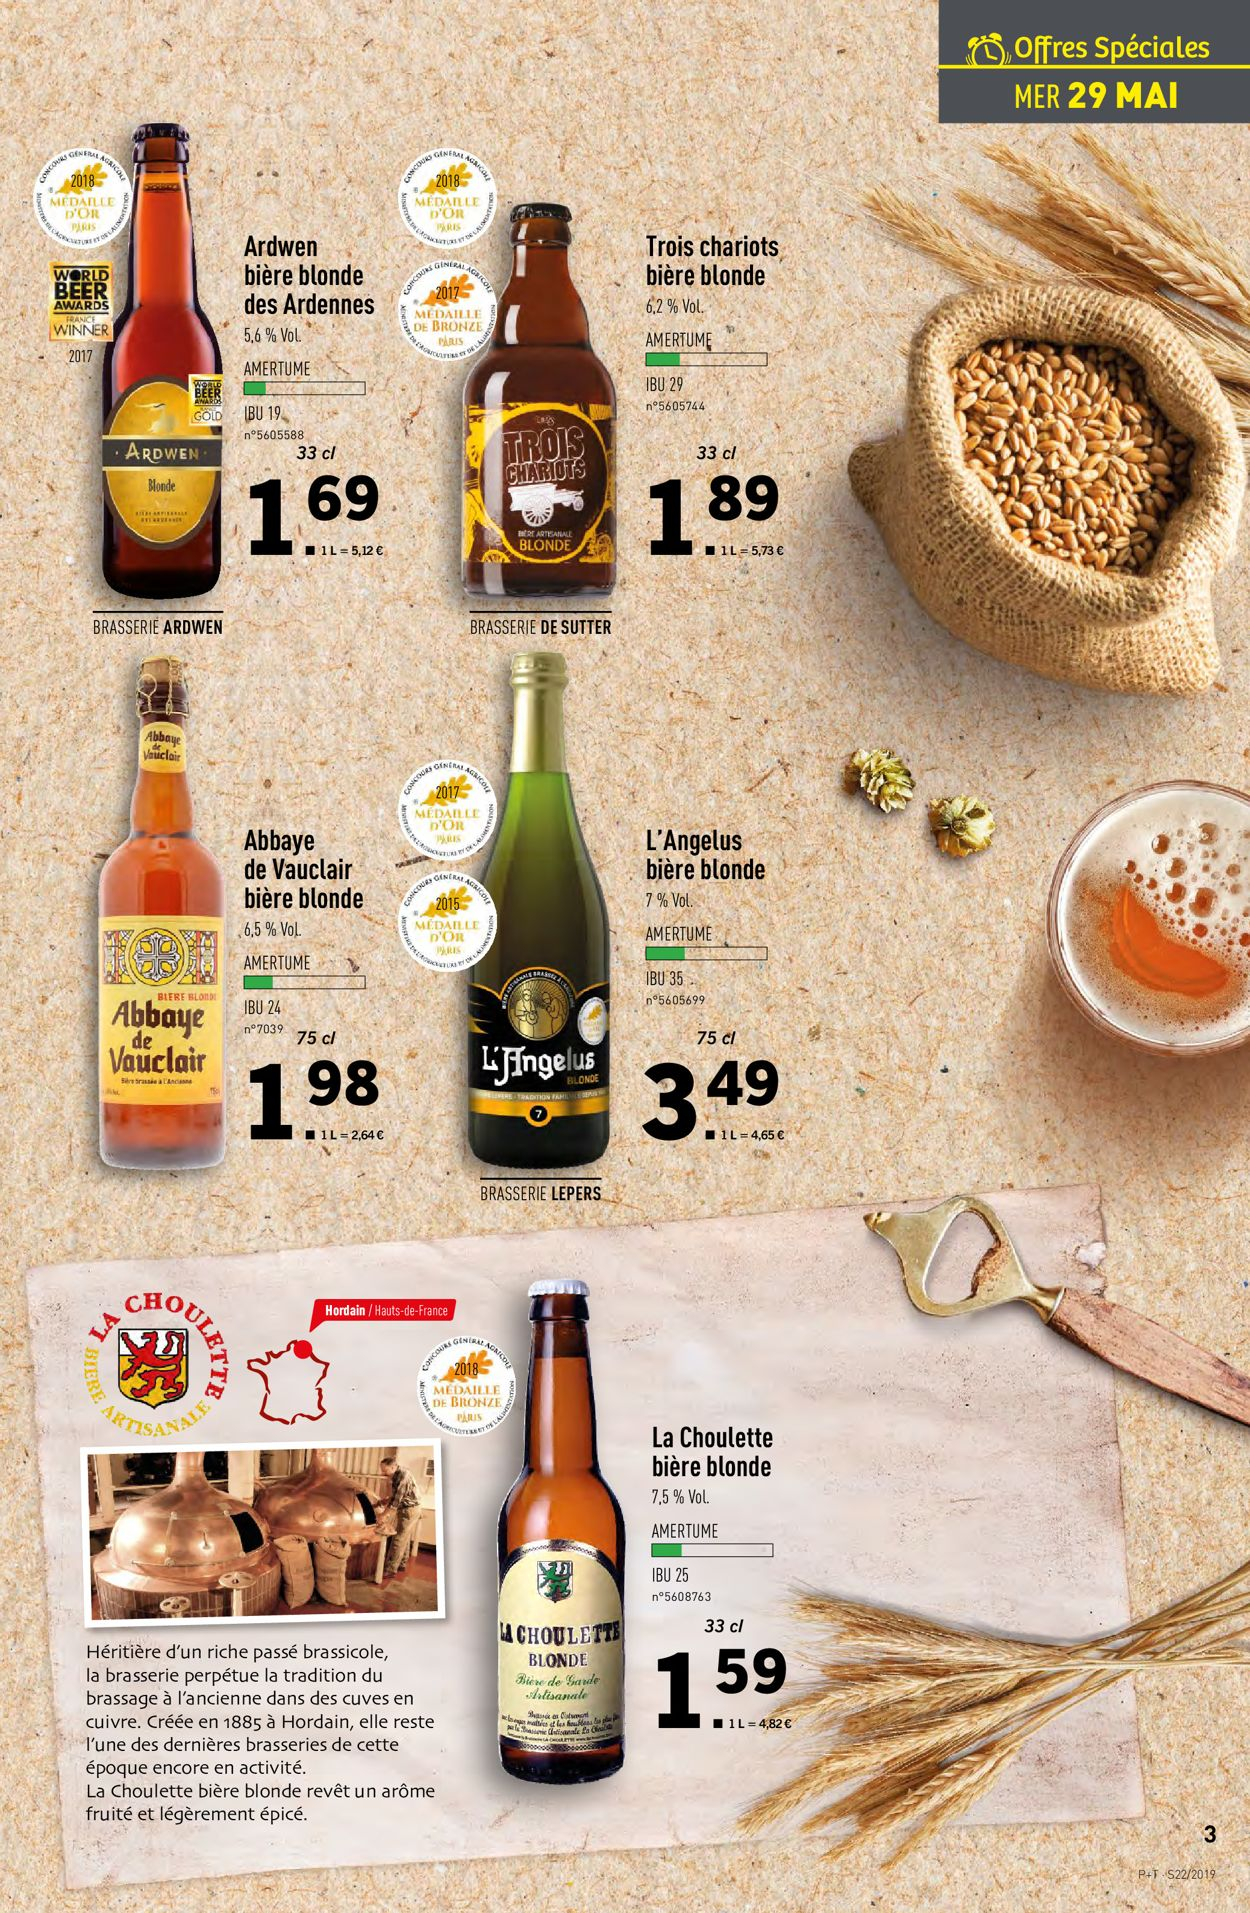 Lidl Catalogue - 29.05-04.06.2019 (Page 3)